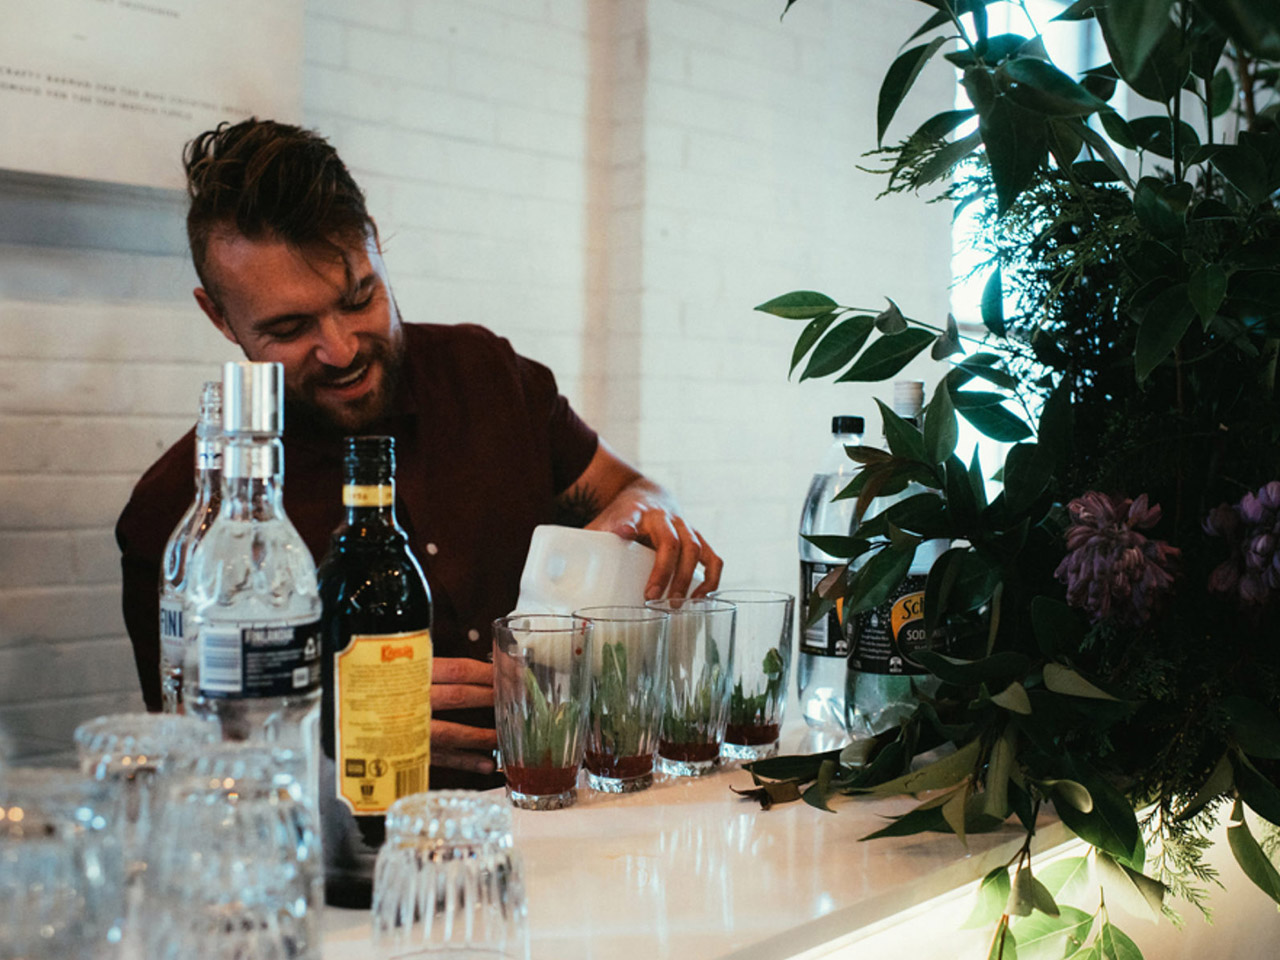 A Man Pouring Drinks In Glasses